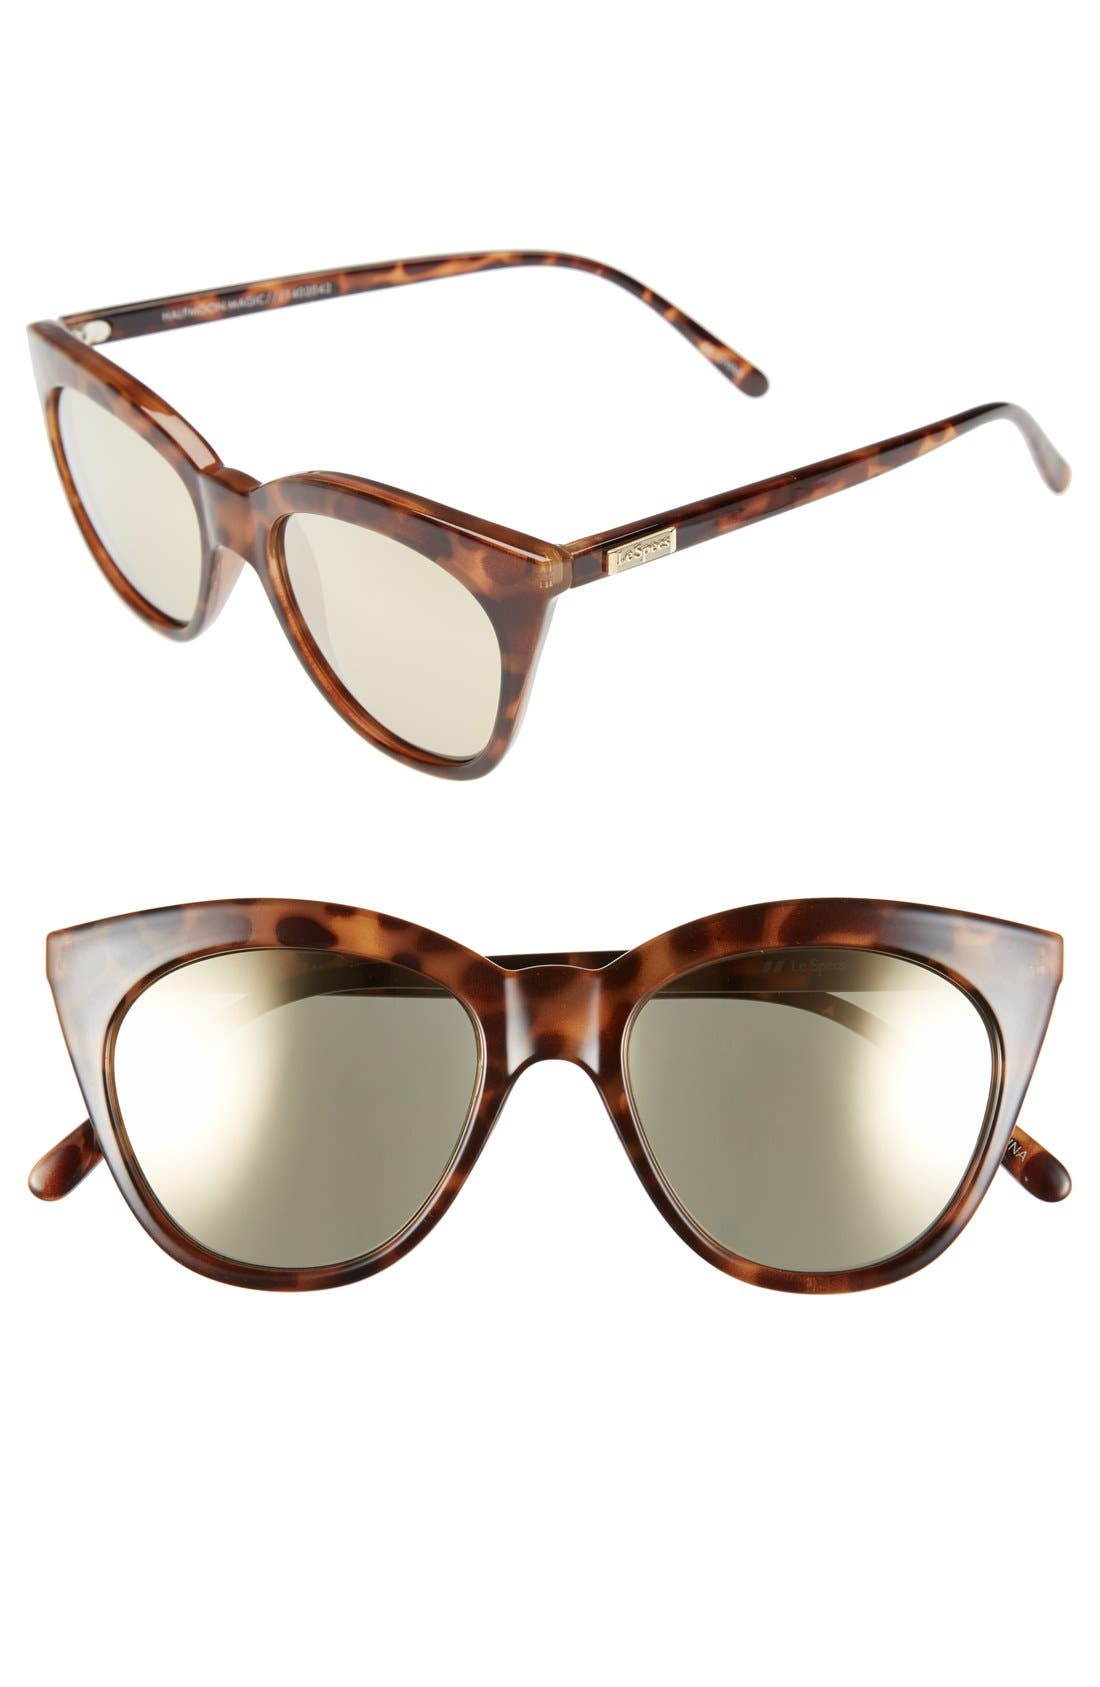 Main Image - Le Specs Halfmoon Magic 51mm Cat Eye Sunglasses